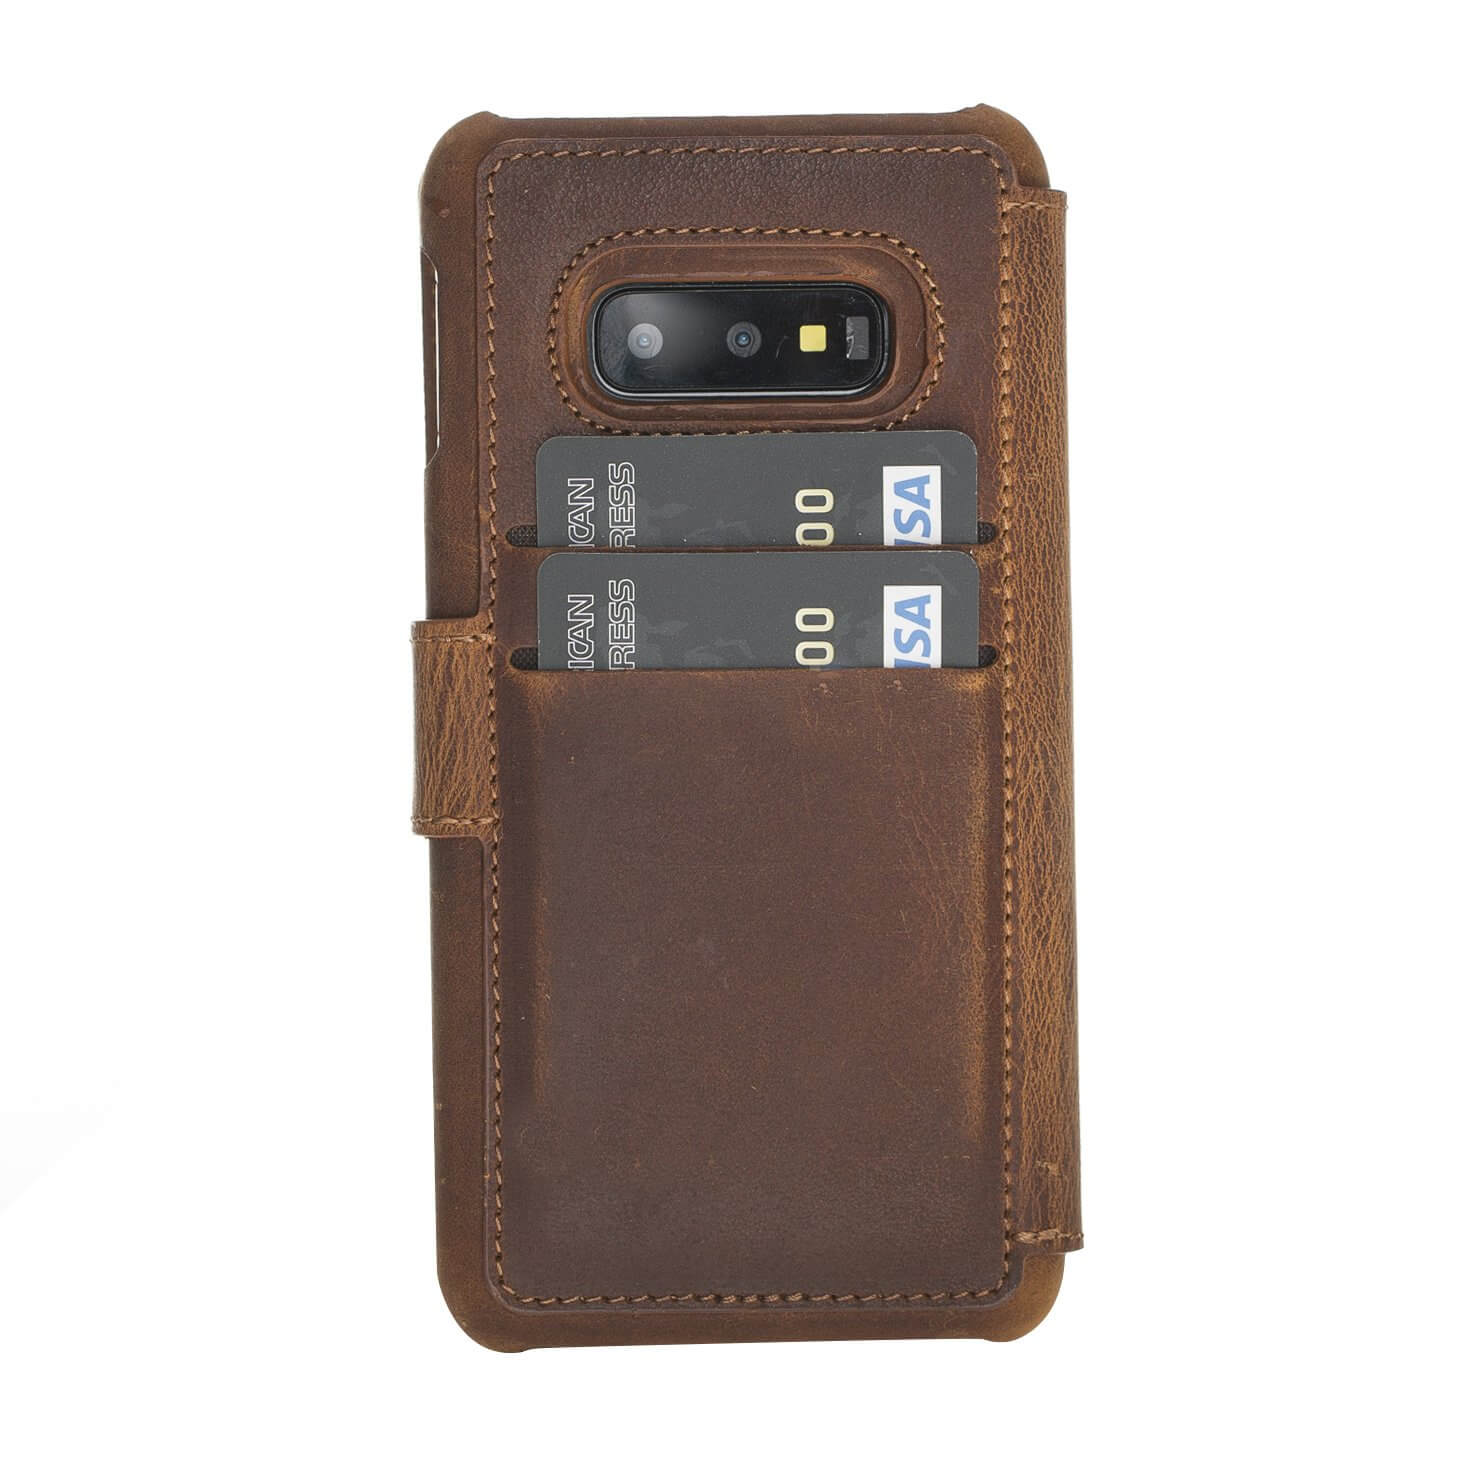 Siena RFID Blocking Leather Wallet Case for Samsung Galaxy S10e